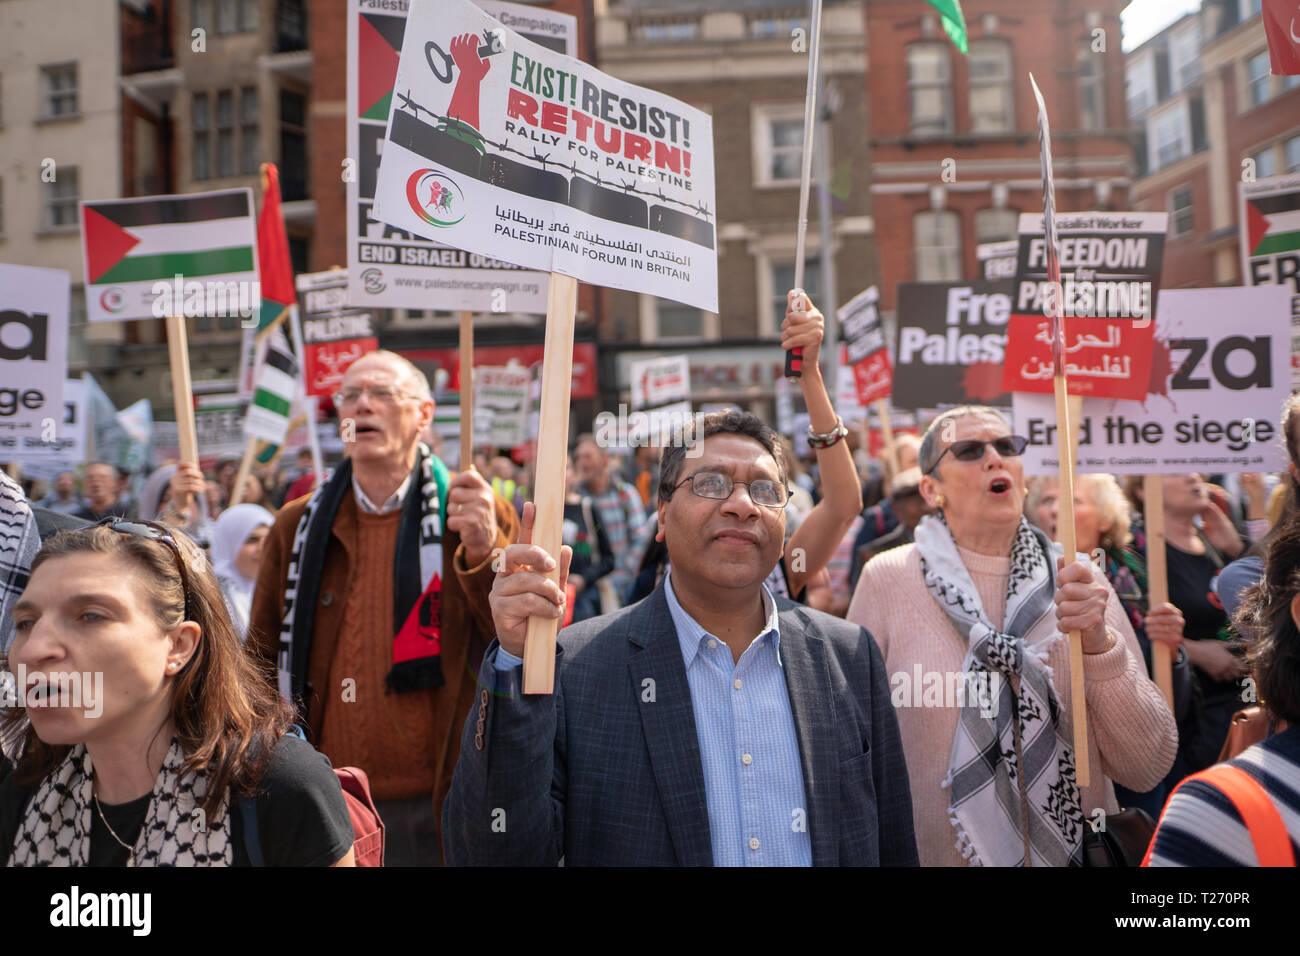 London, UK. 30th March 2019. A pro-Palestine demonstration (Exist, Resist Return) outside the Israel embassy in London. Photo date: Saturday, March 30, 2019. Photo: Roger Garfield/Alamy Live News Credit: Roger Garfield/Alamy Live News - Stock Image